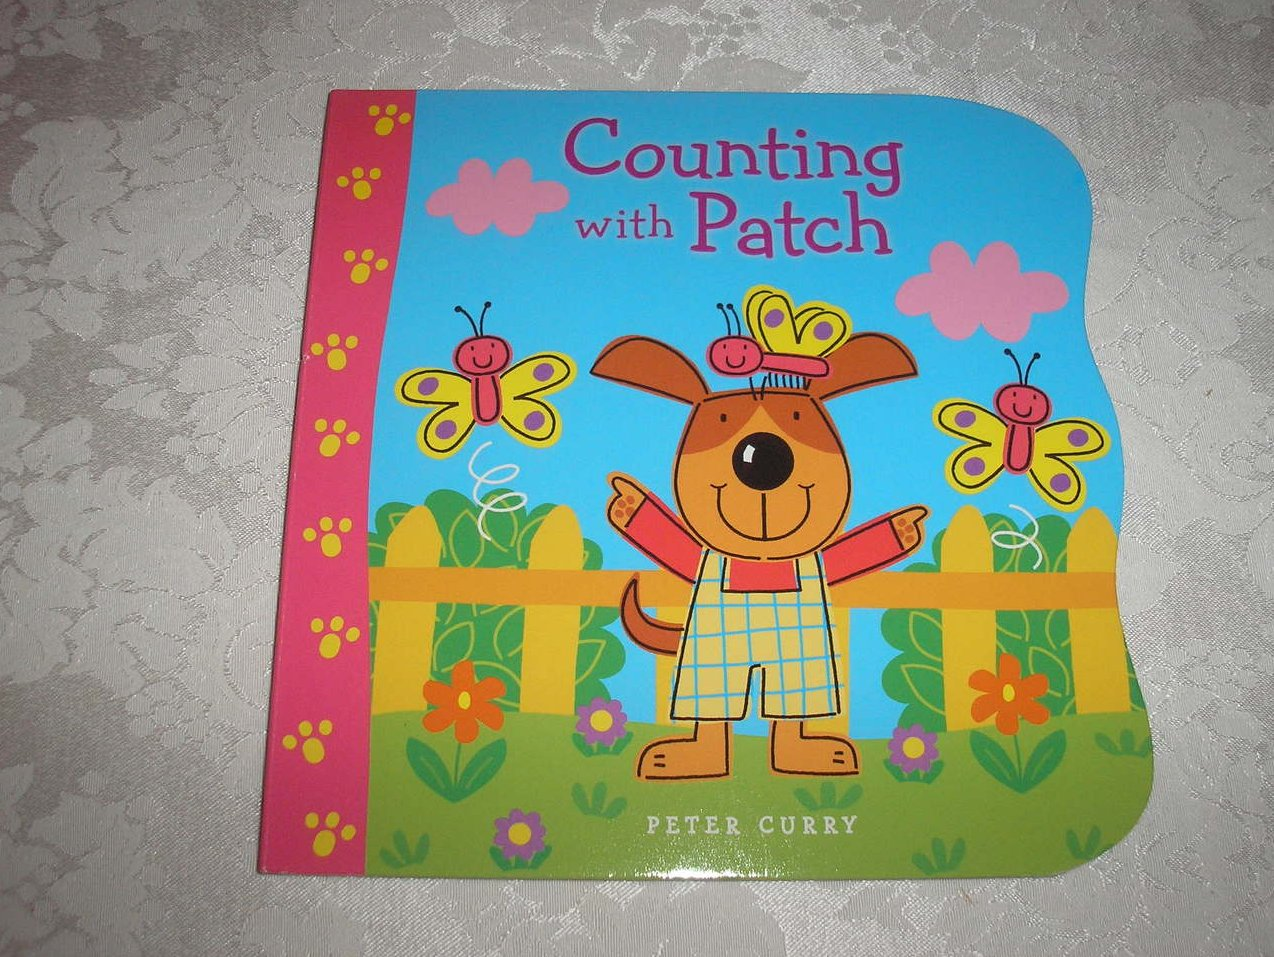 Counting With Patch Peter Curry brand new board book